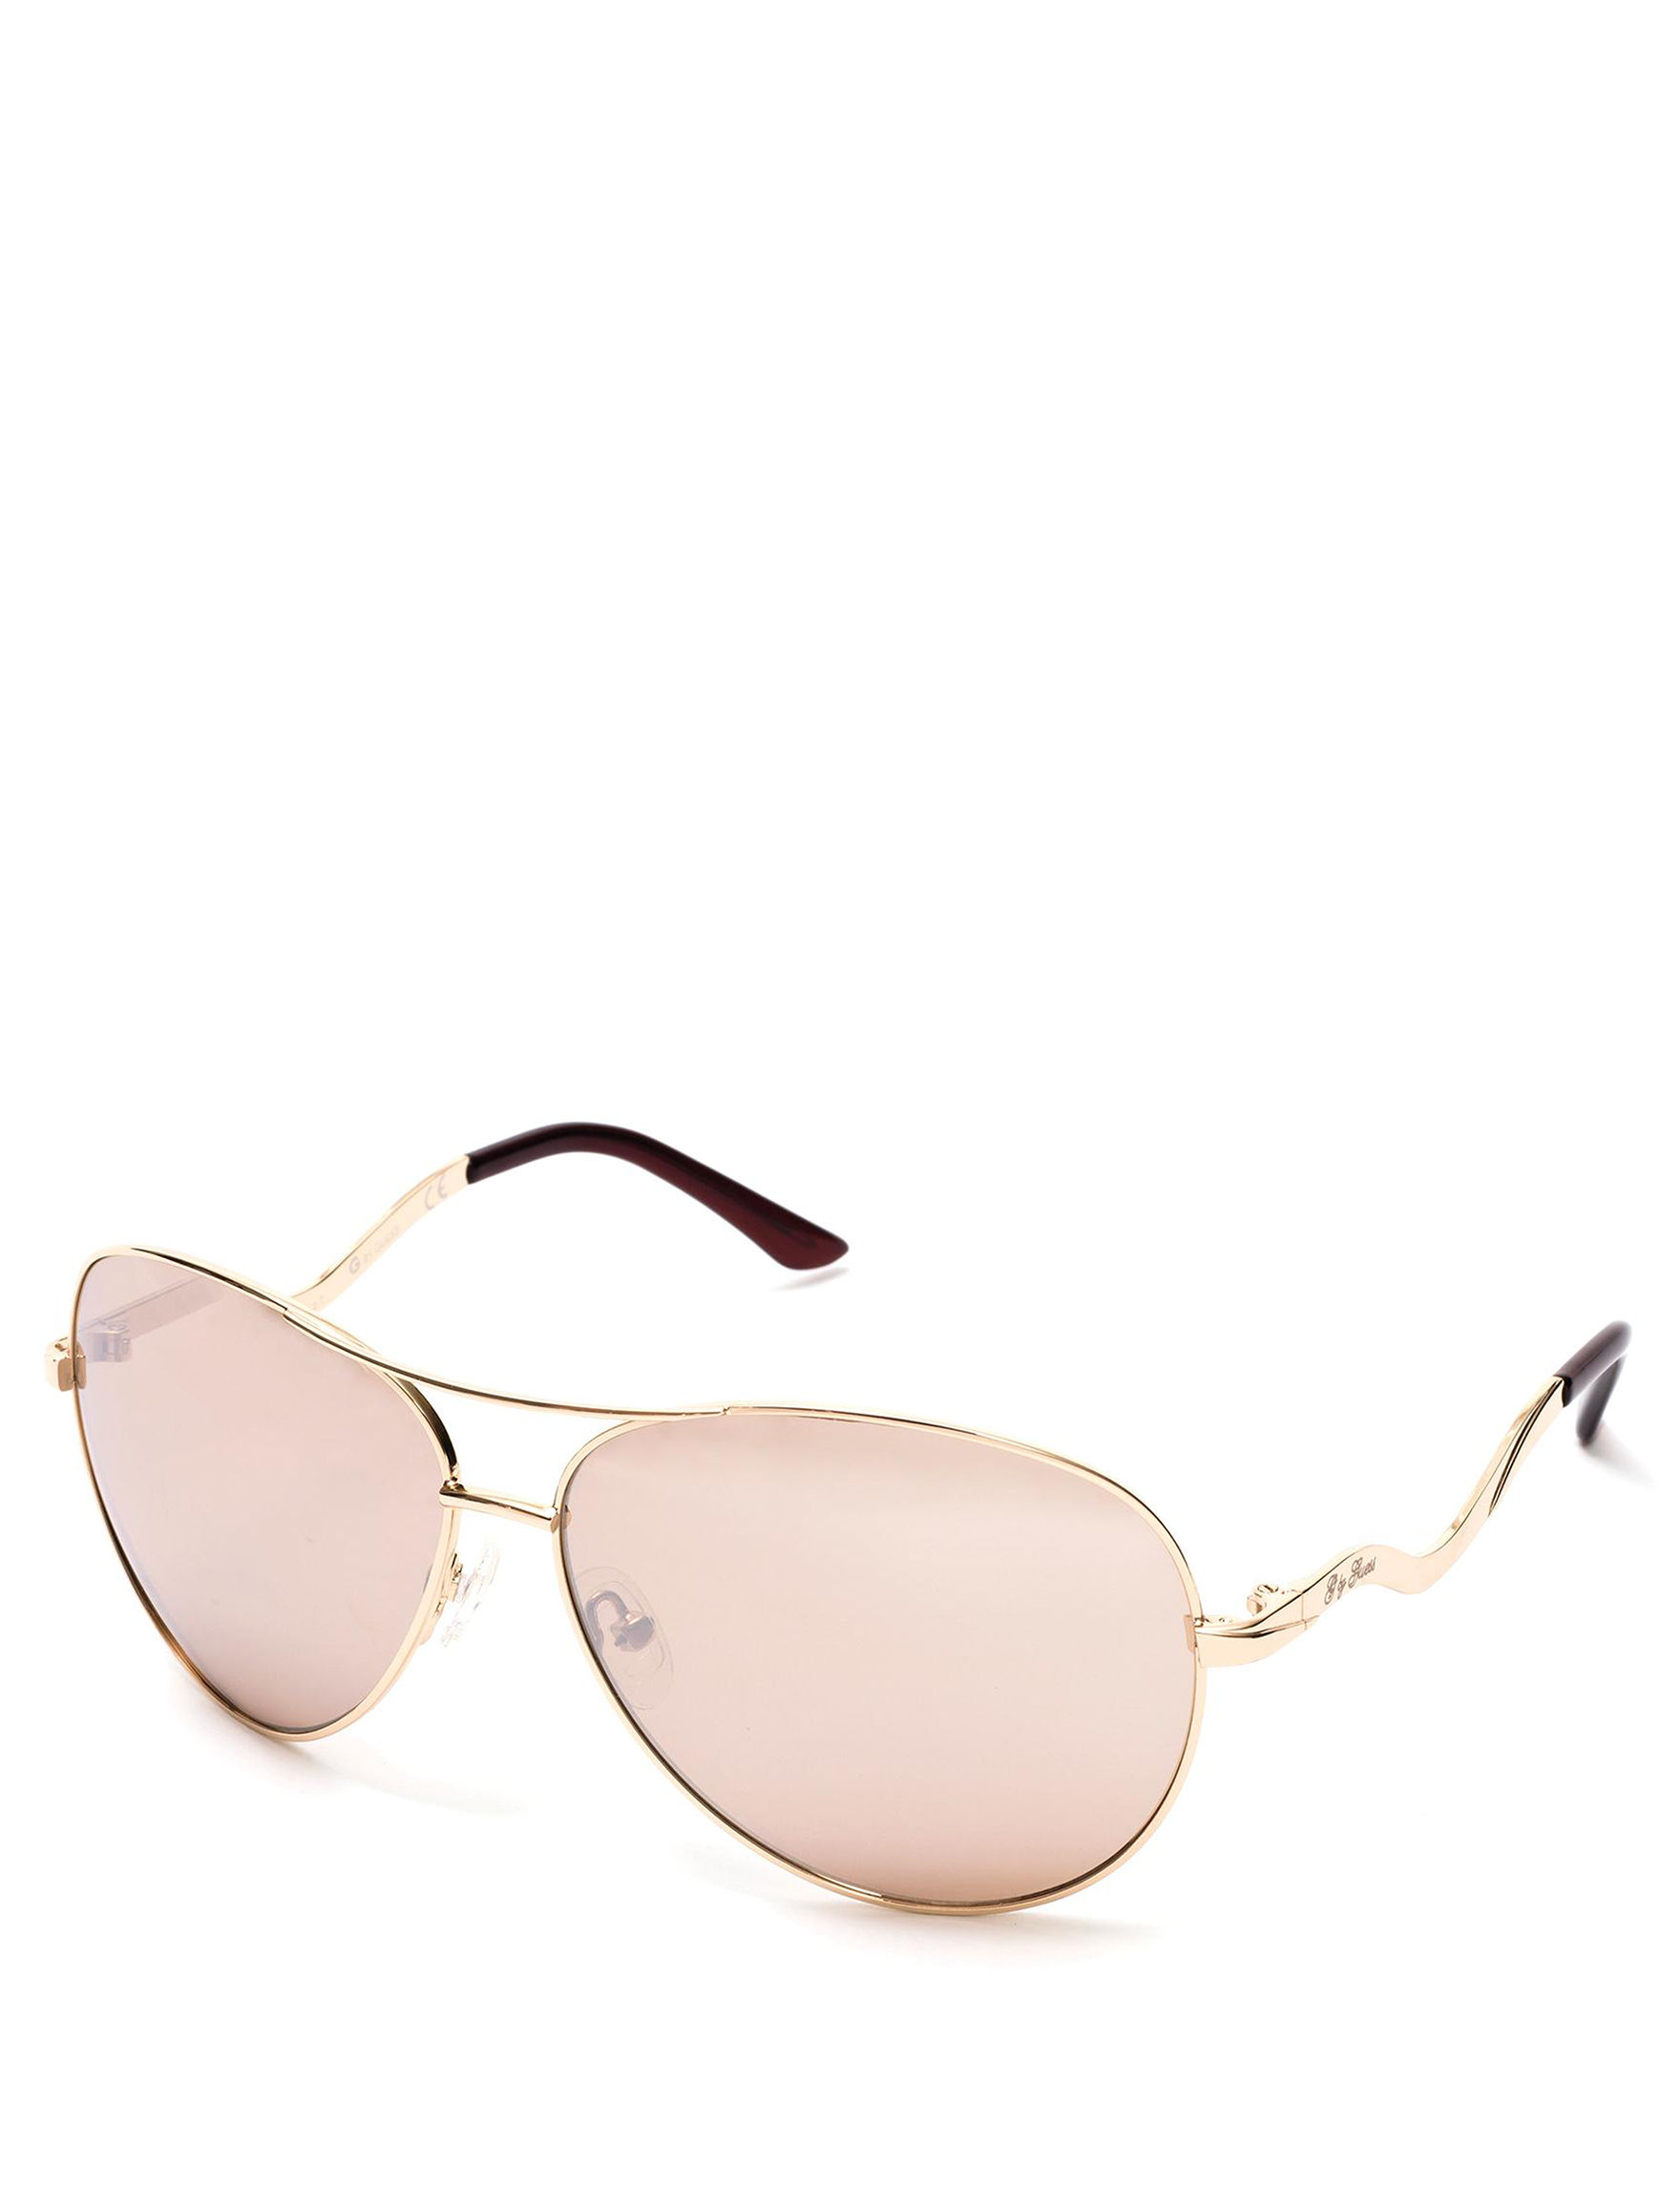 G by Guess Golden Brown